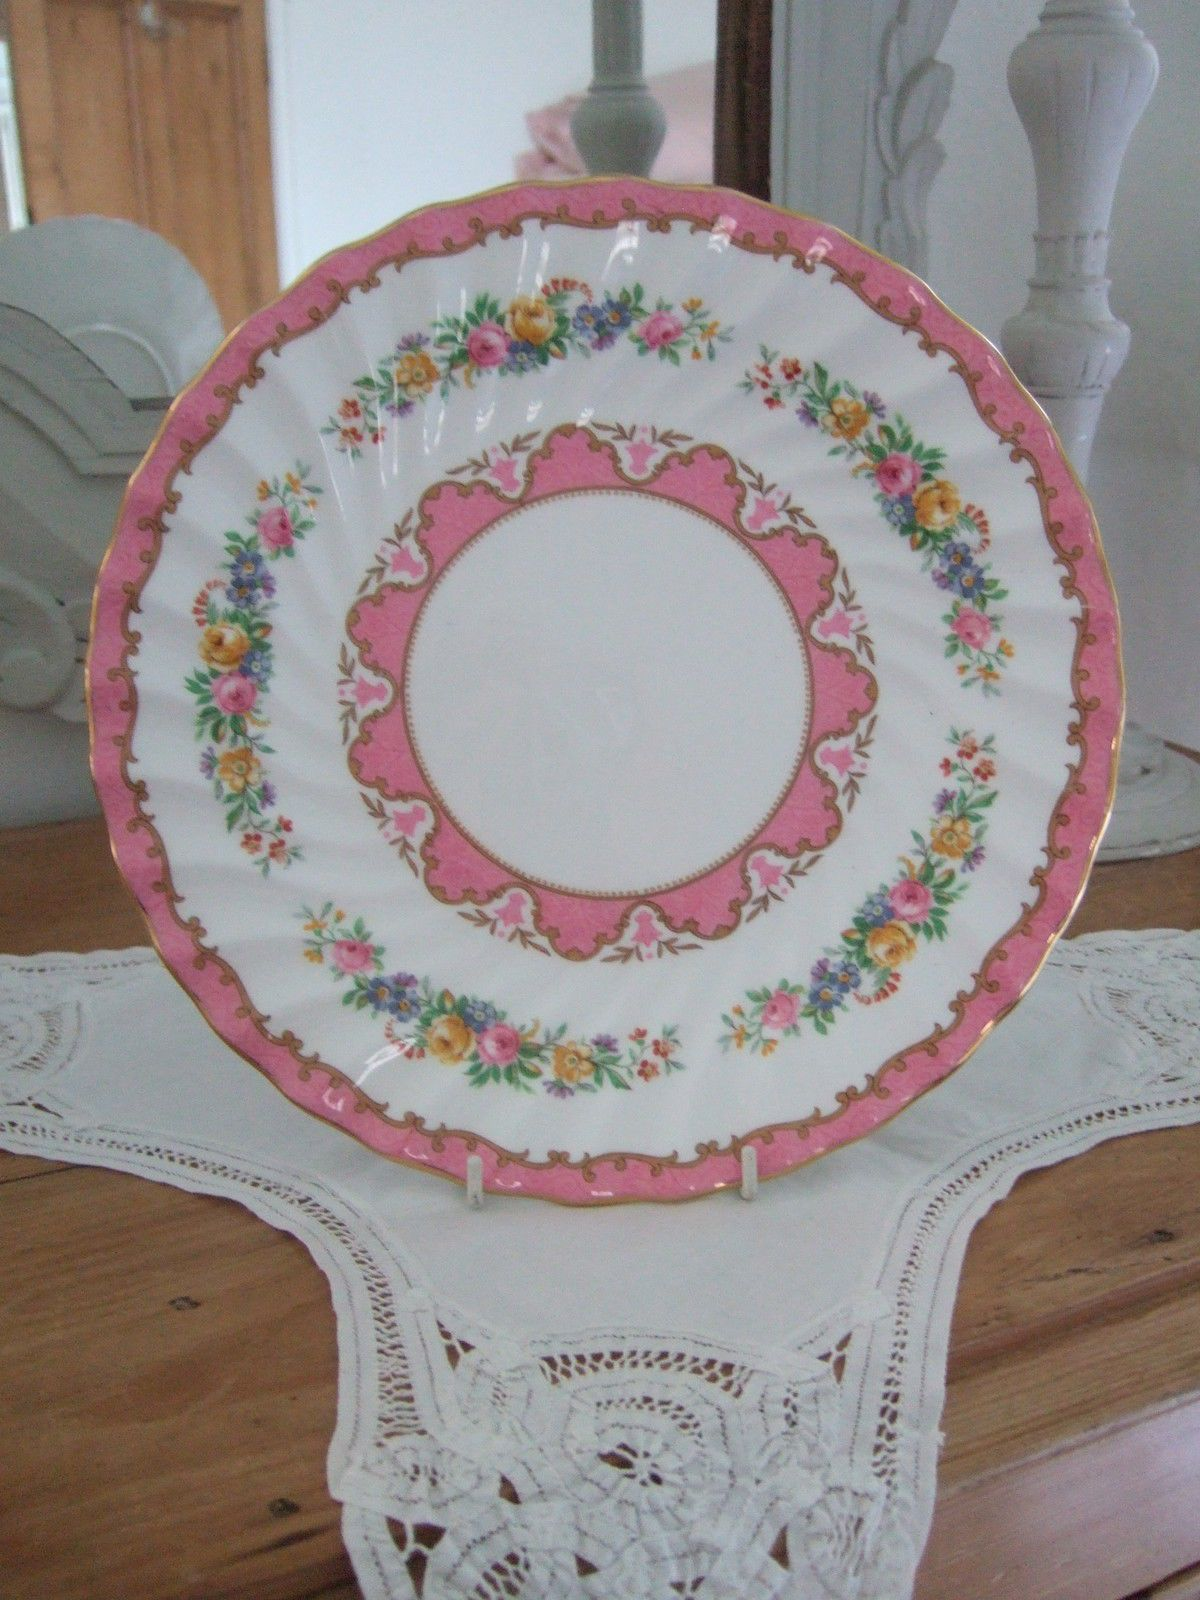 Cake Plates/Stands Crown Staffordshire Porcelain u0026 China | eBay & Pin by Erin Kenney-Pascarella on Vintage Treasures | Pinterest ...